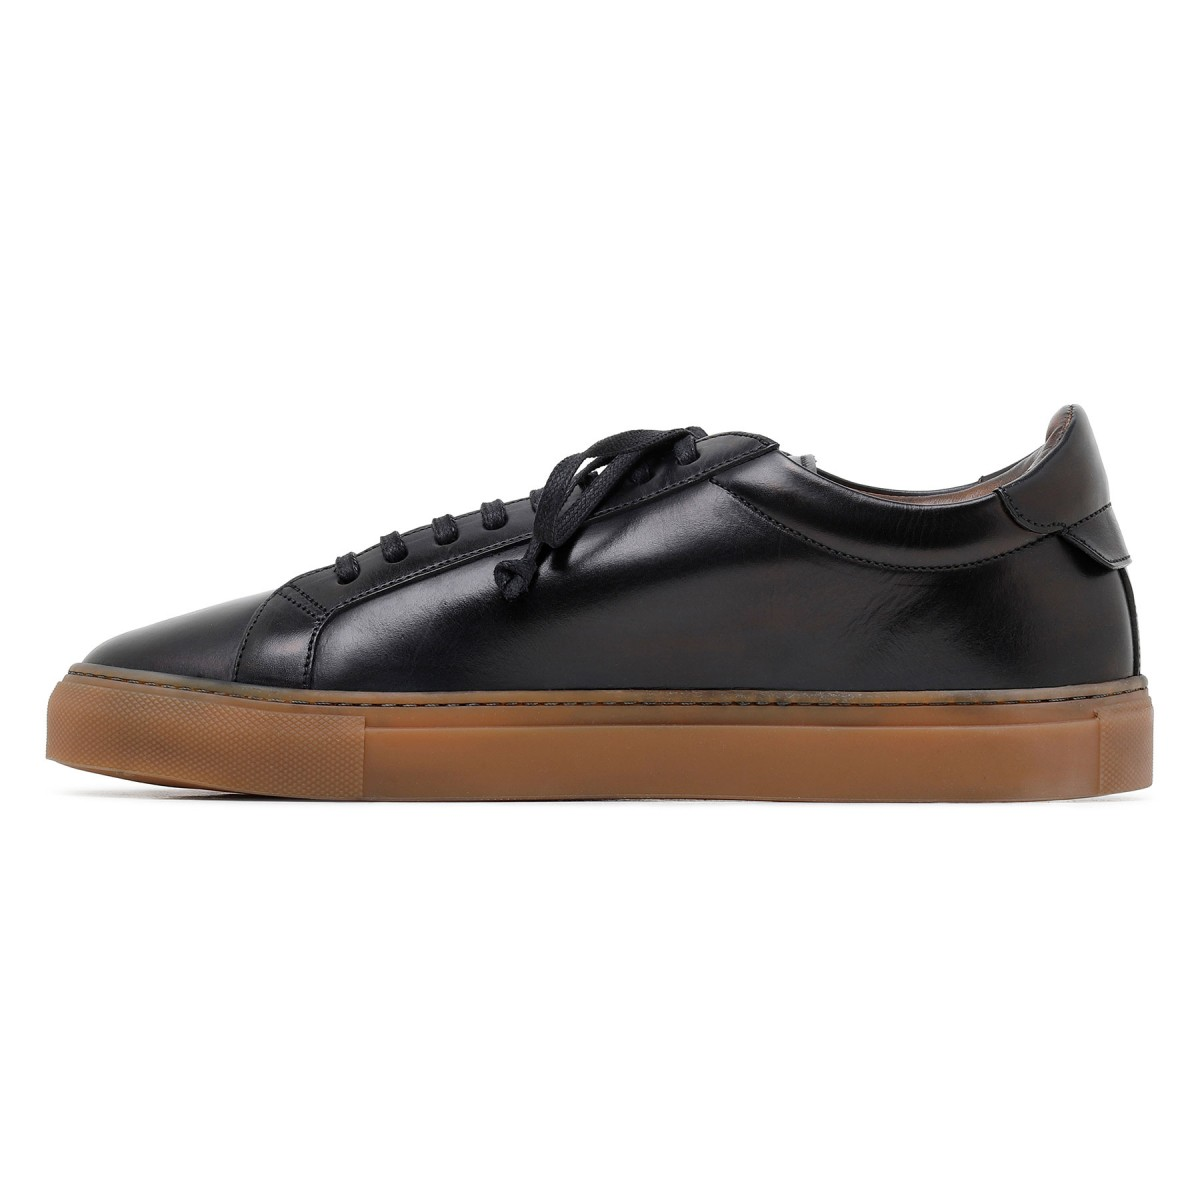 Romilly black leather sneakers